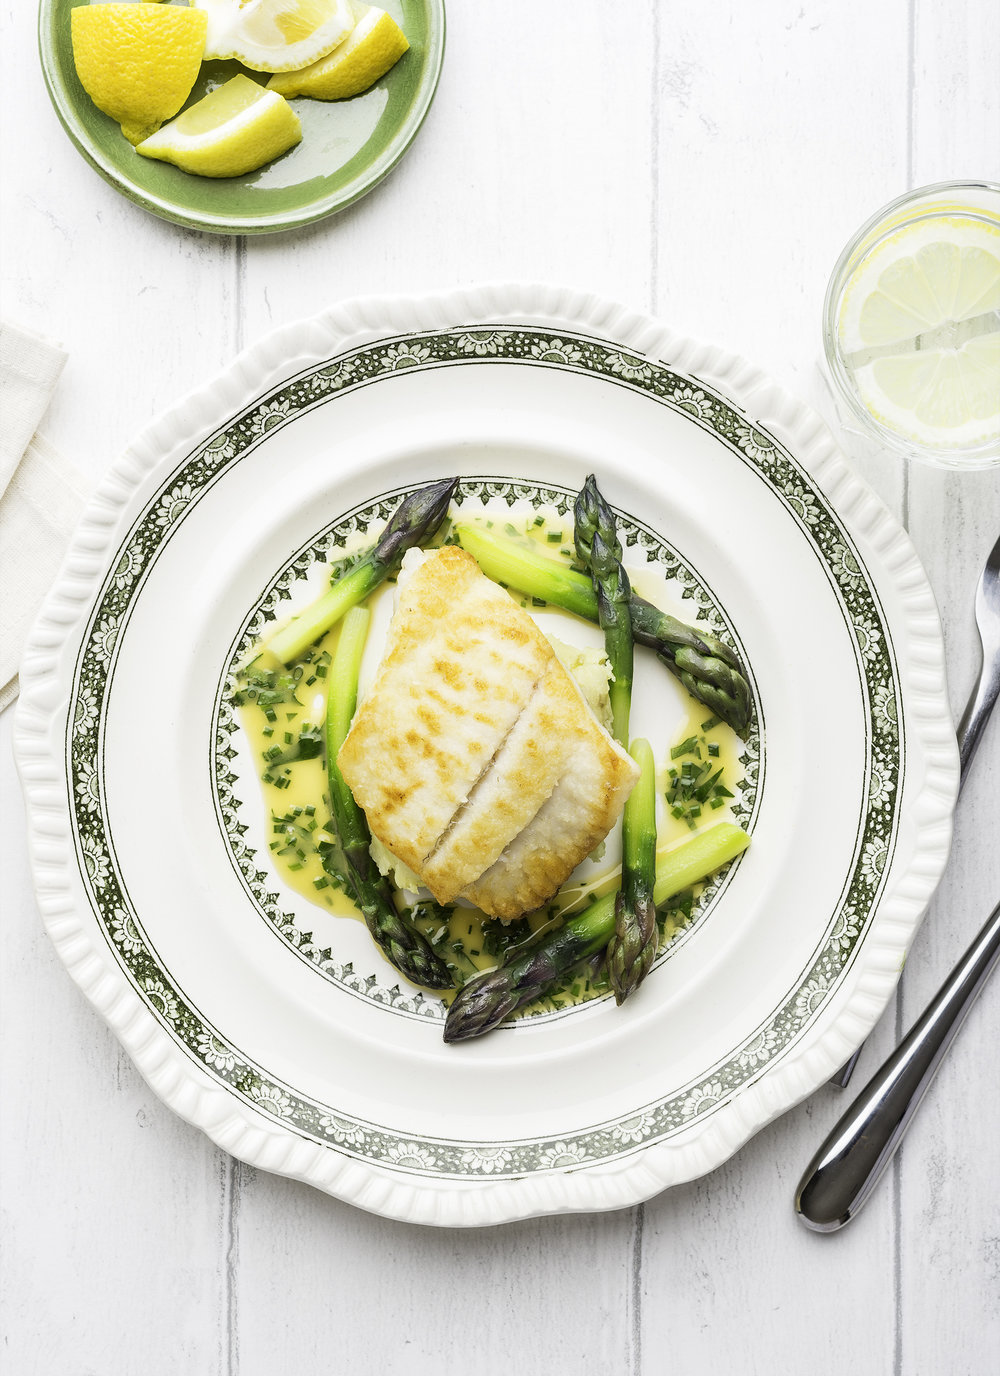 Fillet of brill with crushed Jersey Royals, asparagus & herb butter sauce - from Well Seasoned, exploring cooking & eating with the seasonsby Russell Brown & Jonathan Haley (Head of Zeus)